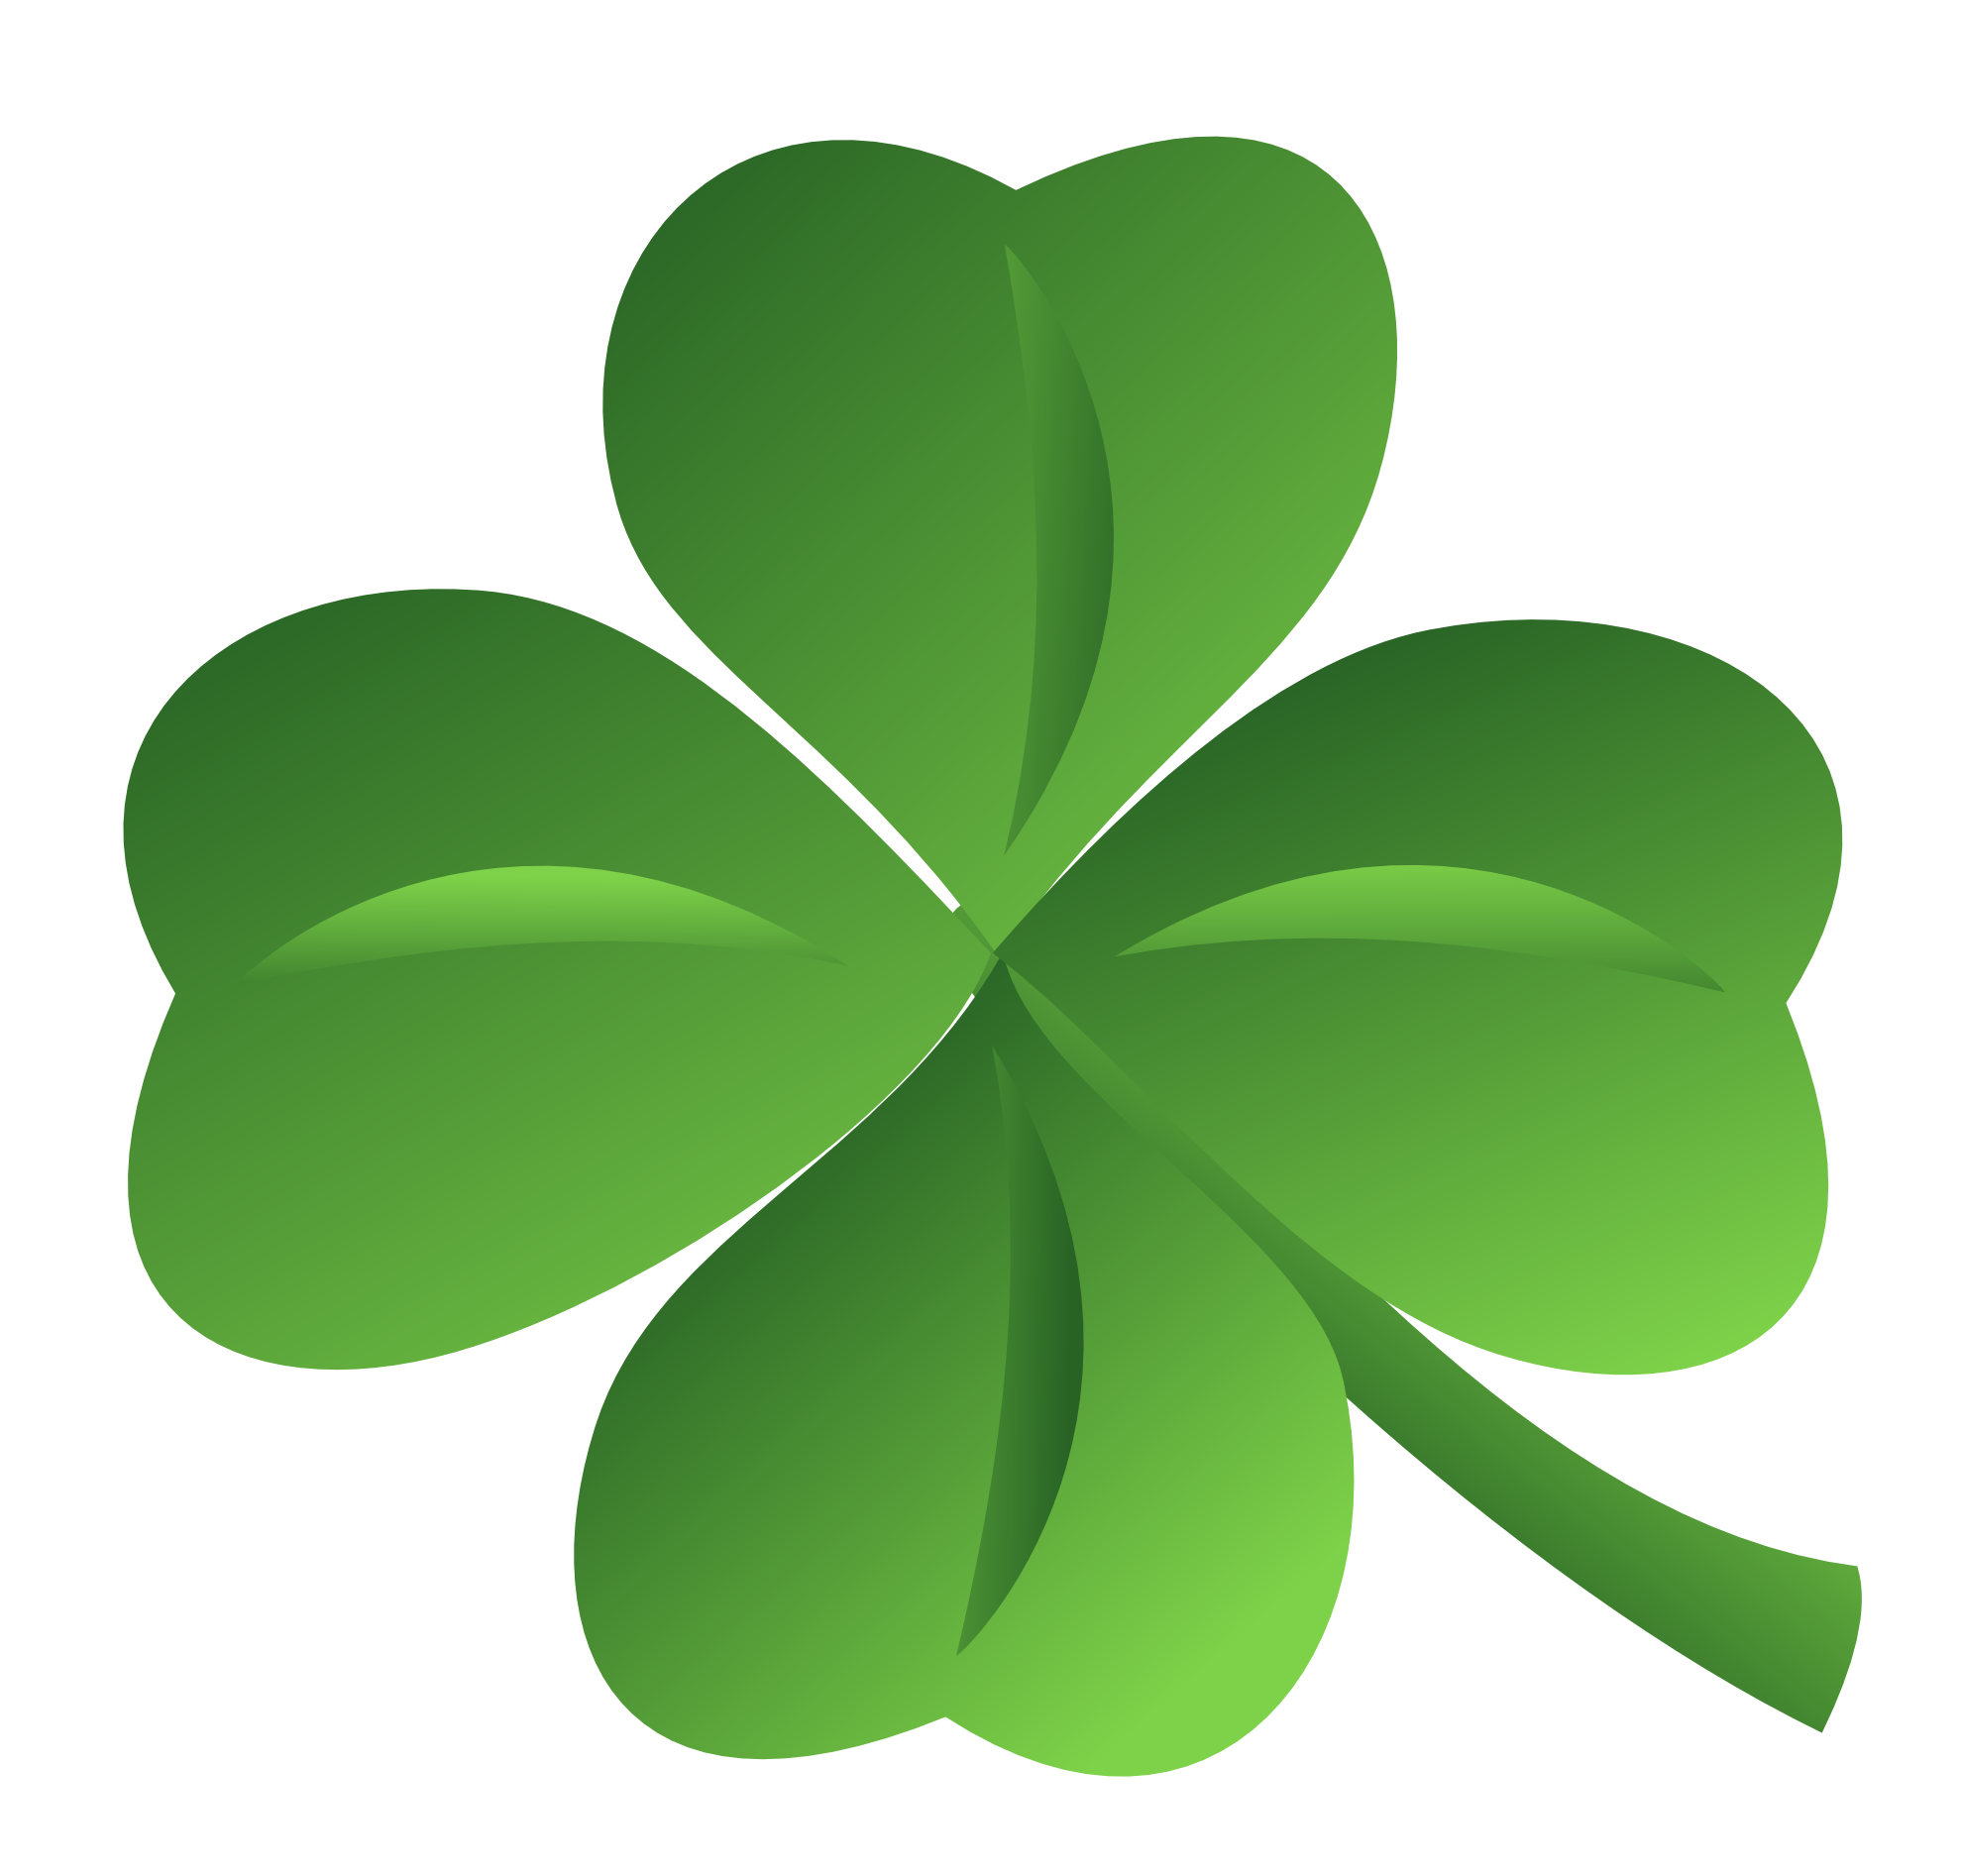 Clipart balloon st patrick's day. Patrick s png clover